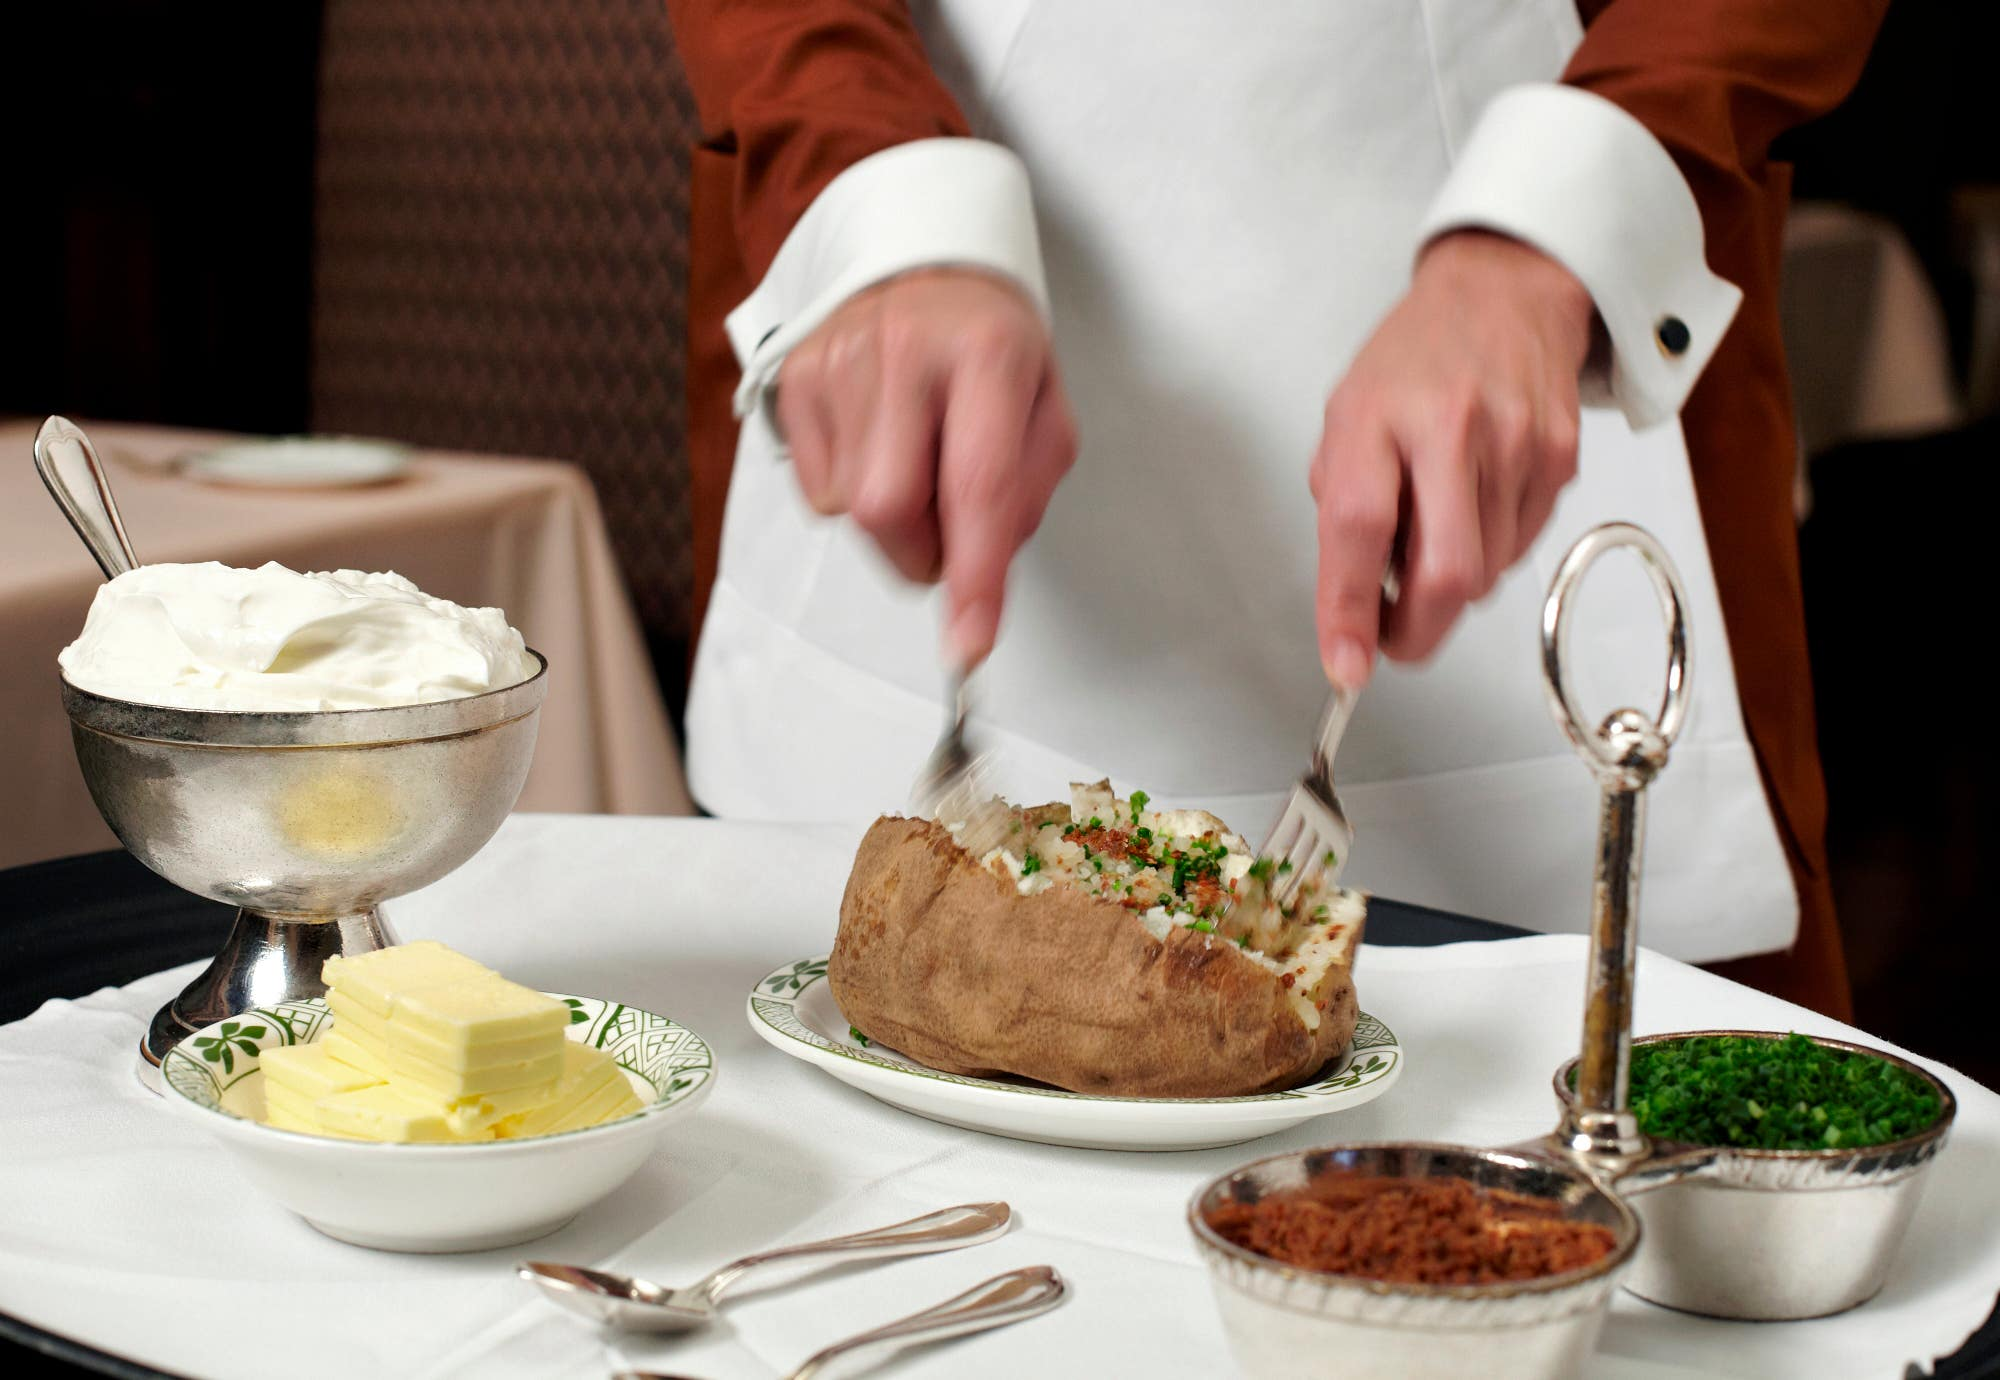 Idaho Baked Potato at Lawry's The Prime Rib in Beverly Hills